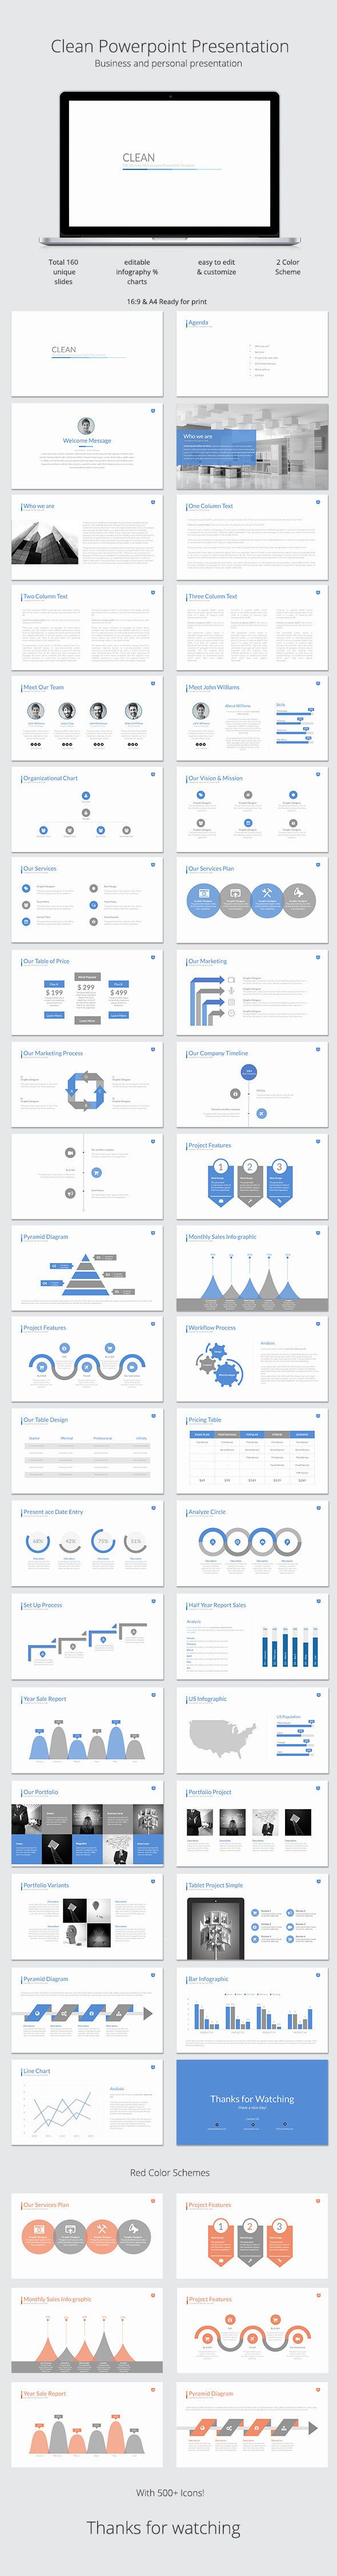 power point slides downloads